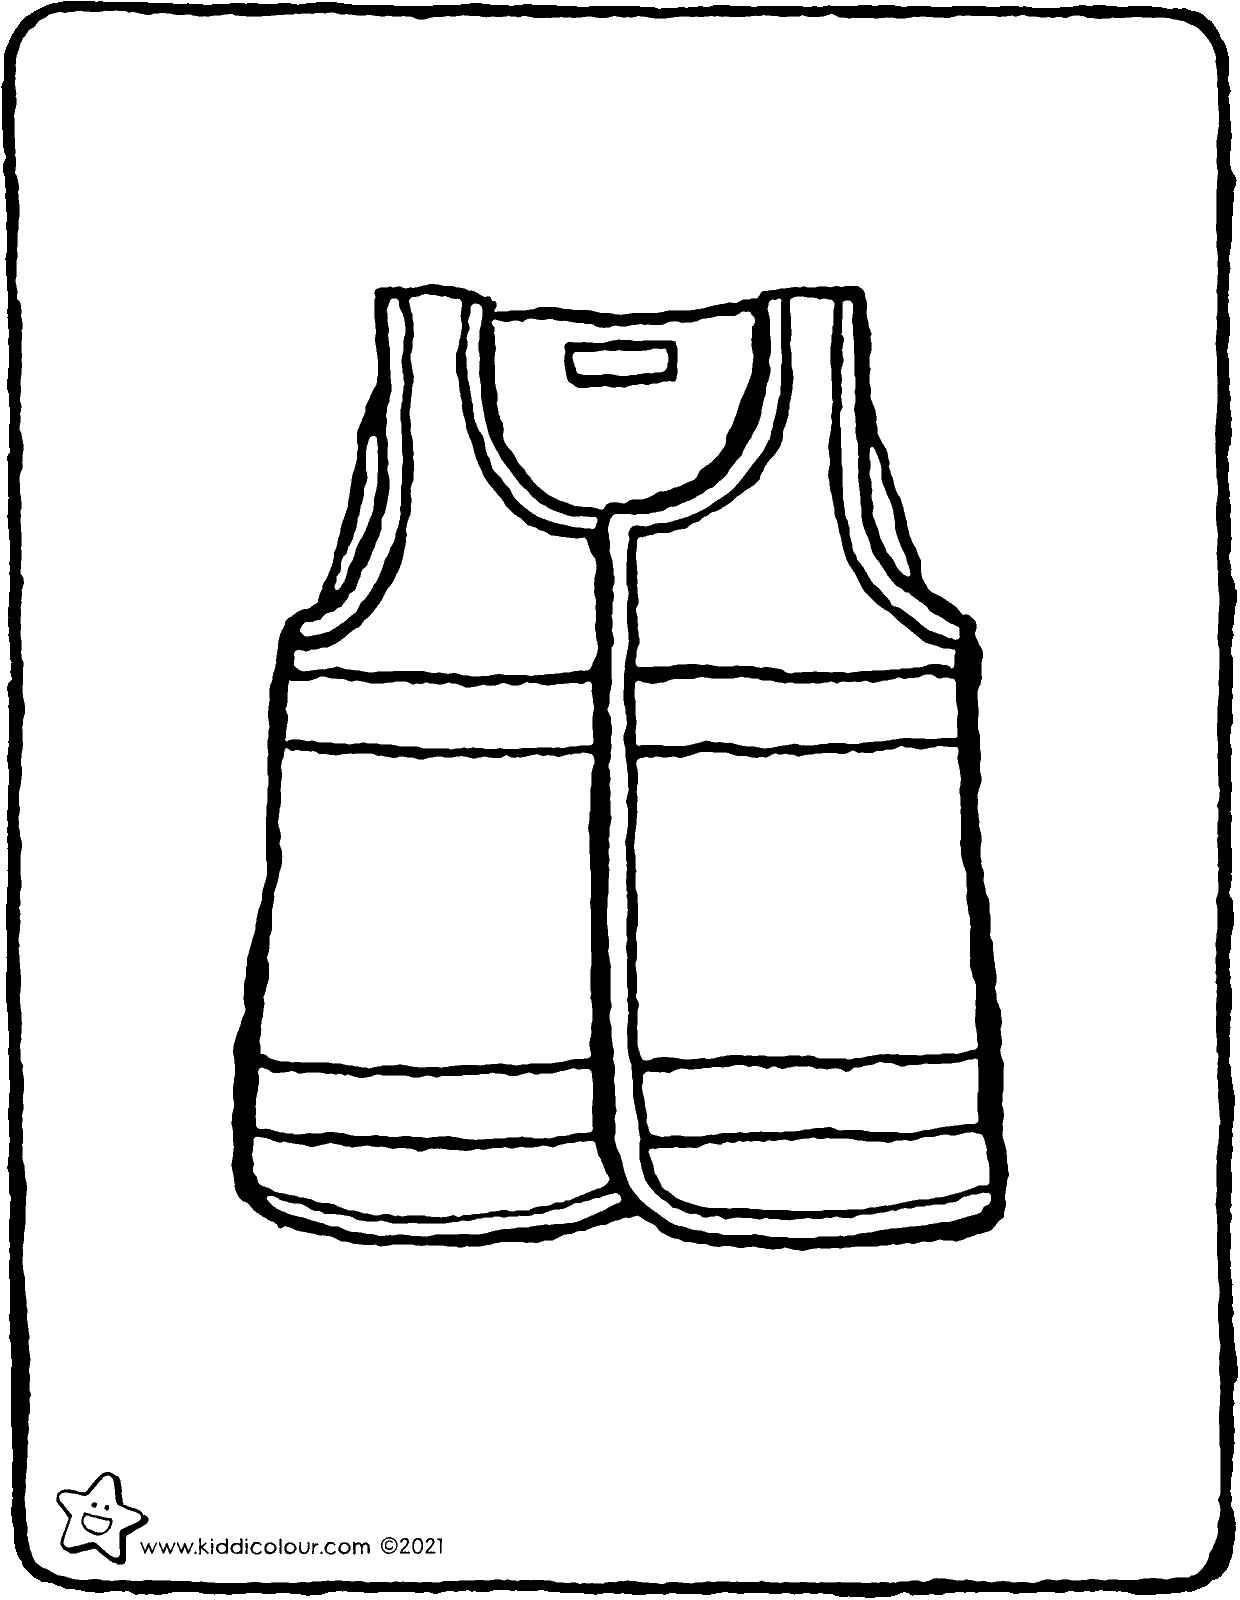 high-vis vest colouring page drawing picture 01V